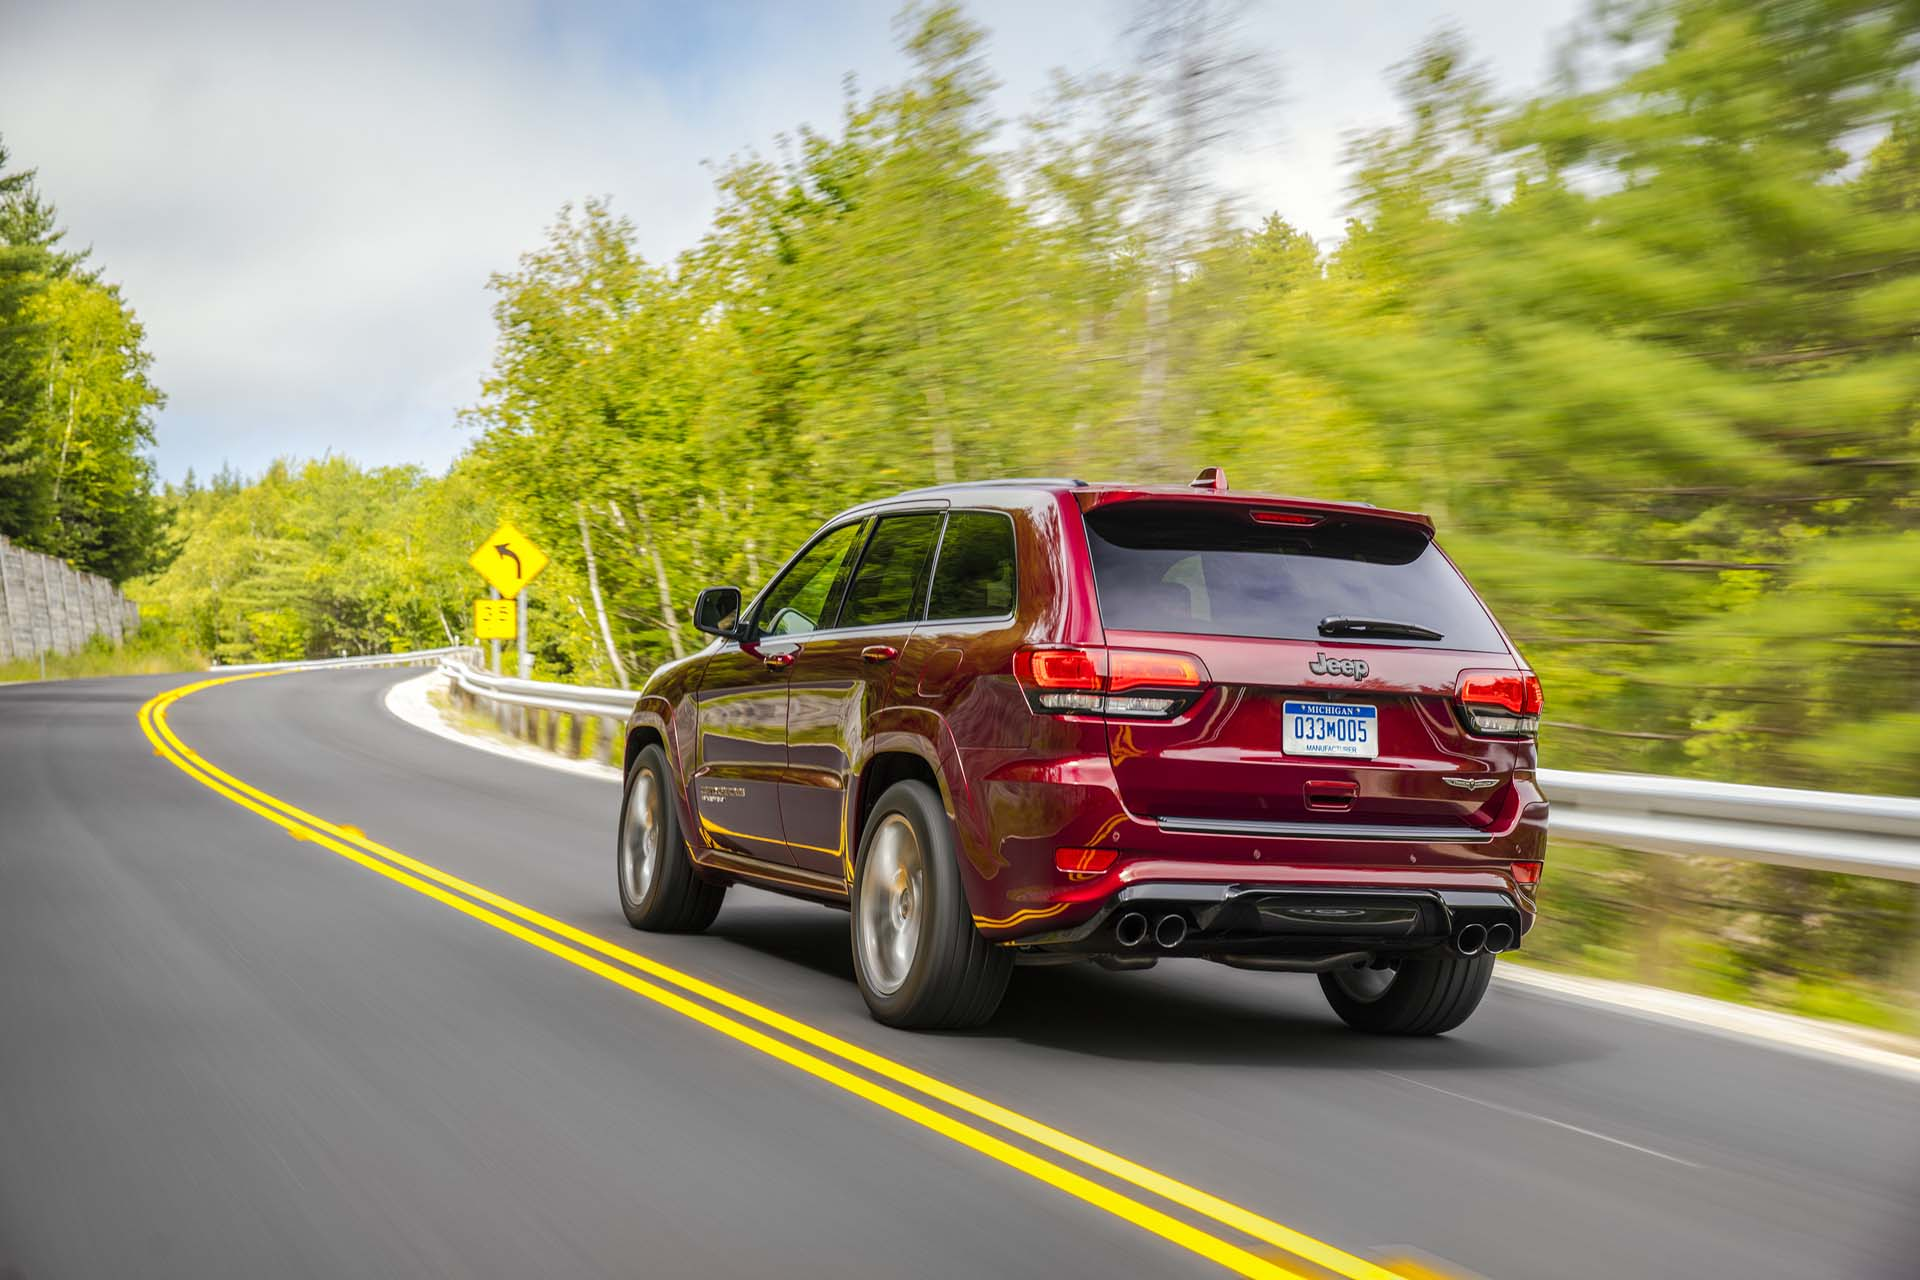 3 Row Jeep Grand Cherokee Will Reportedly Be Built At Idled Detroit Plant